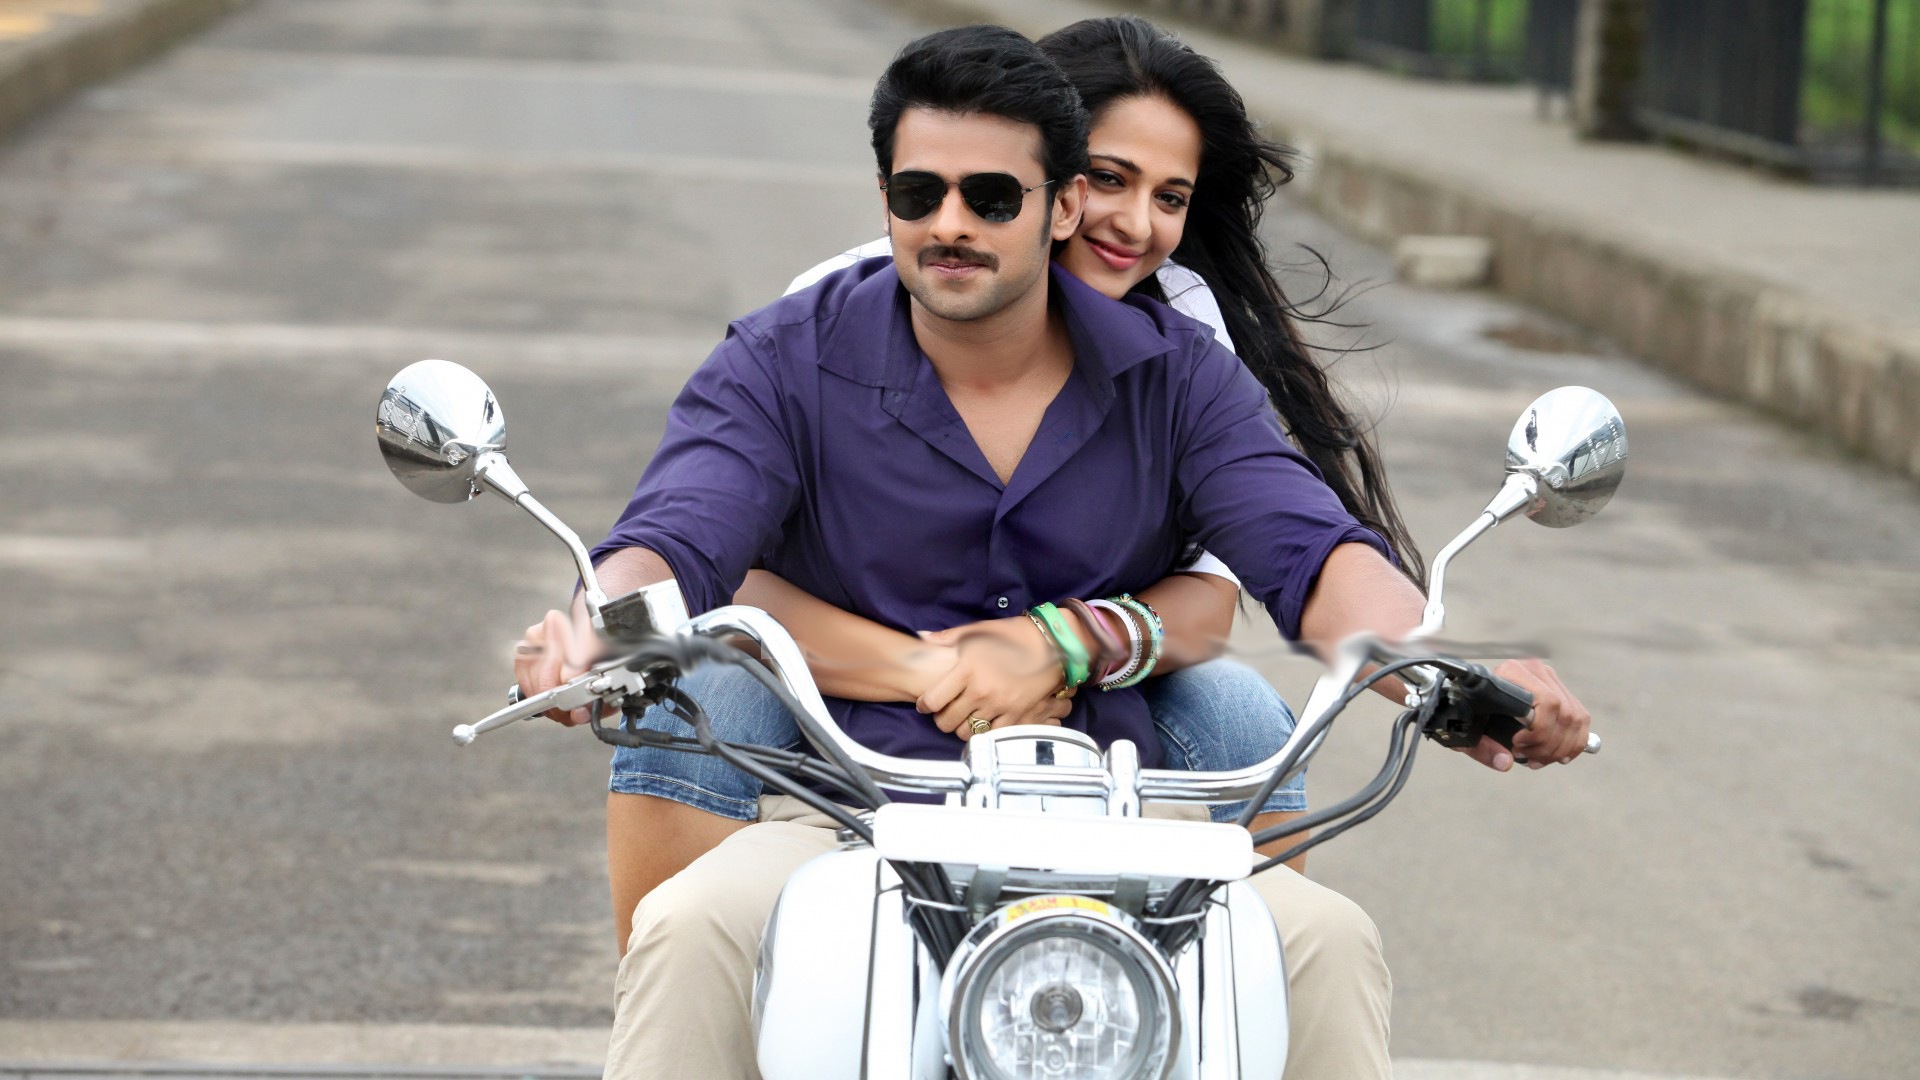 lovely couple prabhas with anushka images picture downloads